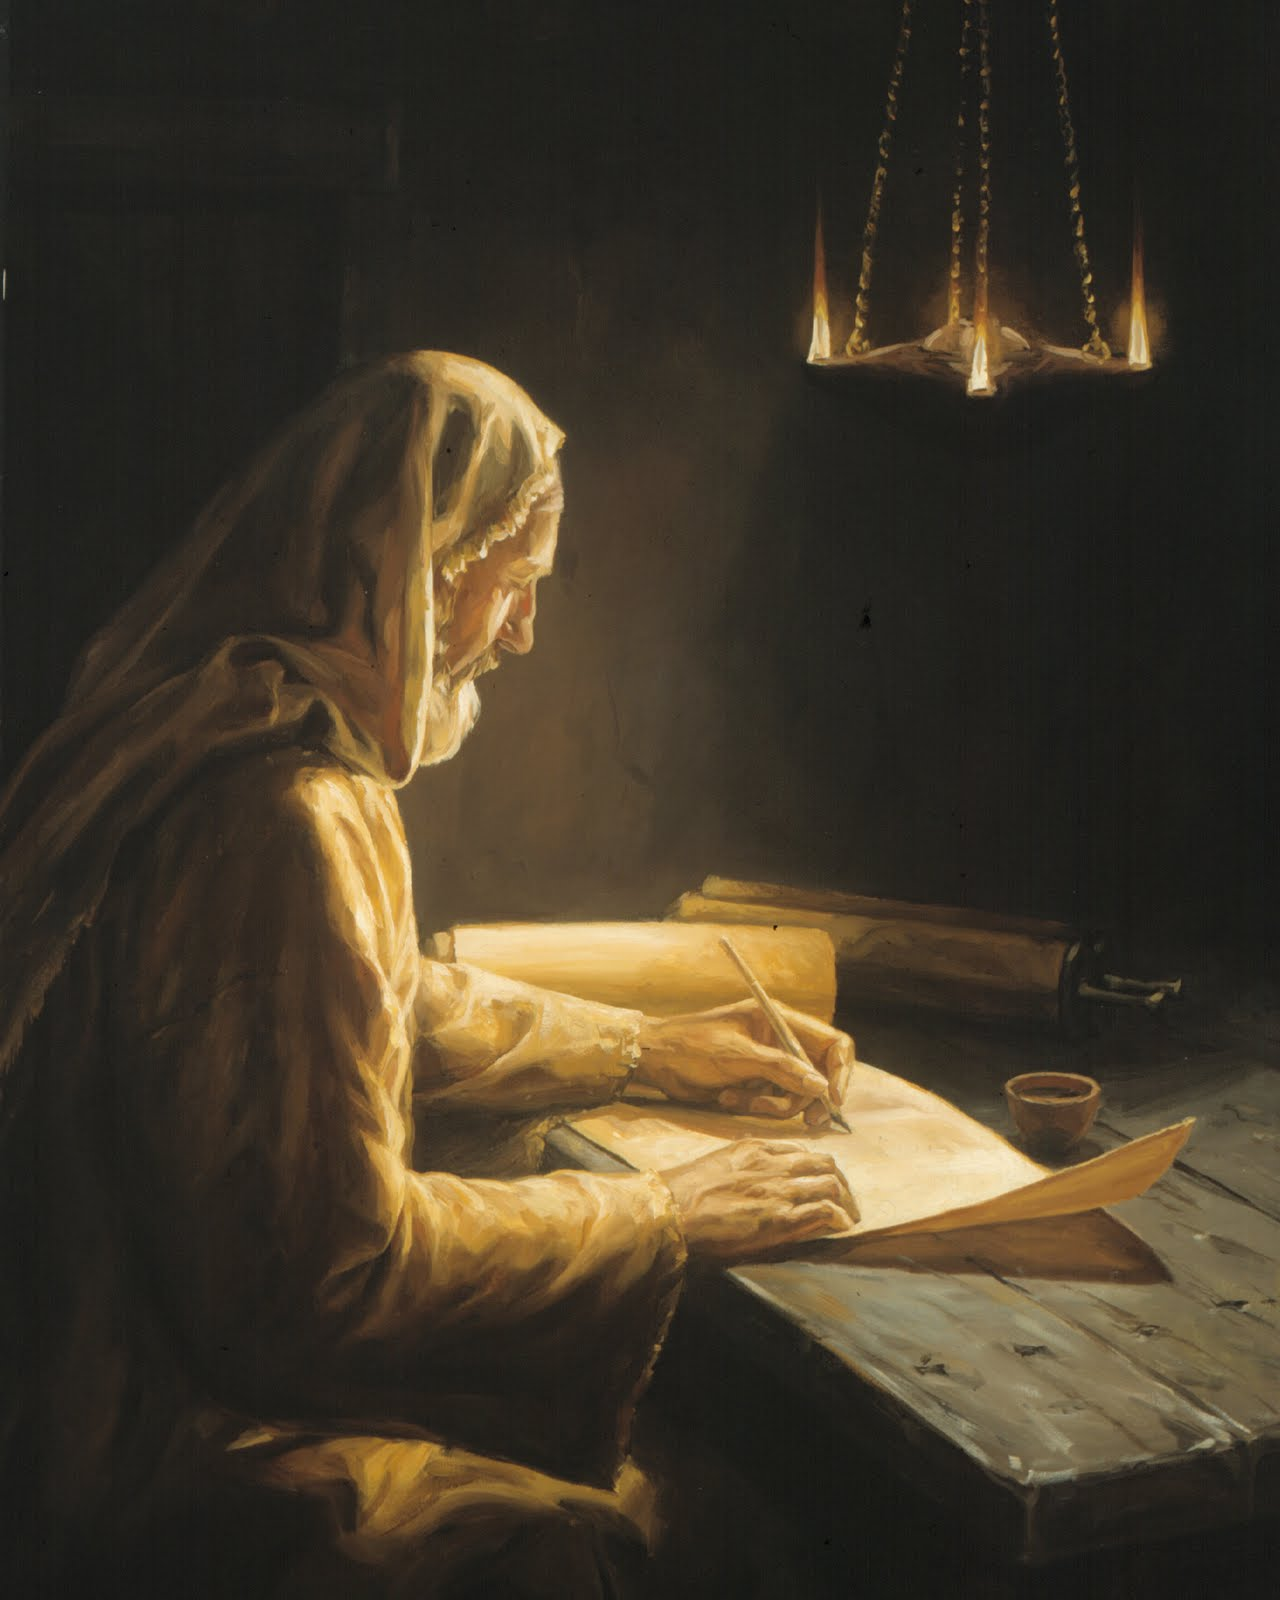 the contribution of prophets in history The contribution of prophets in history essays: over 180,000 the contribution of prophets in history essays, the contribution of prophets in history term papers, the contribution of prophets.